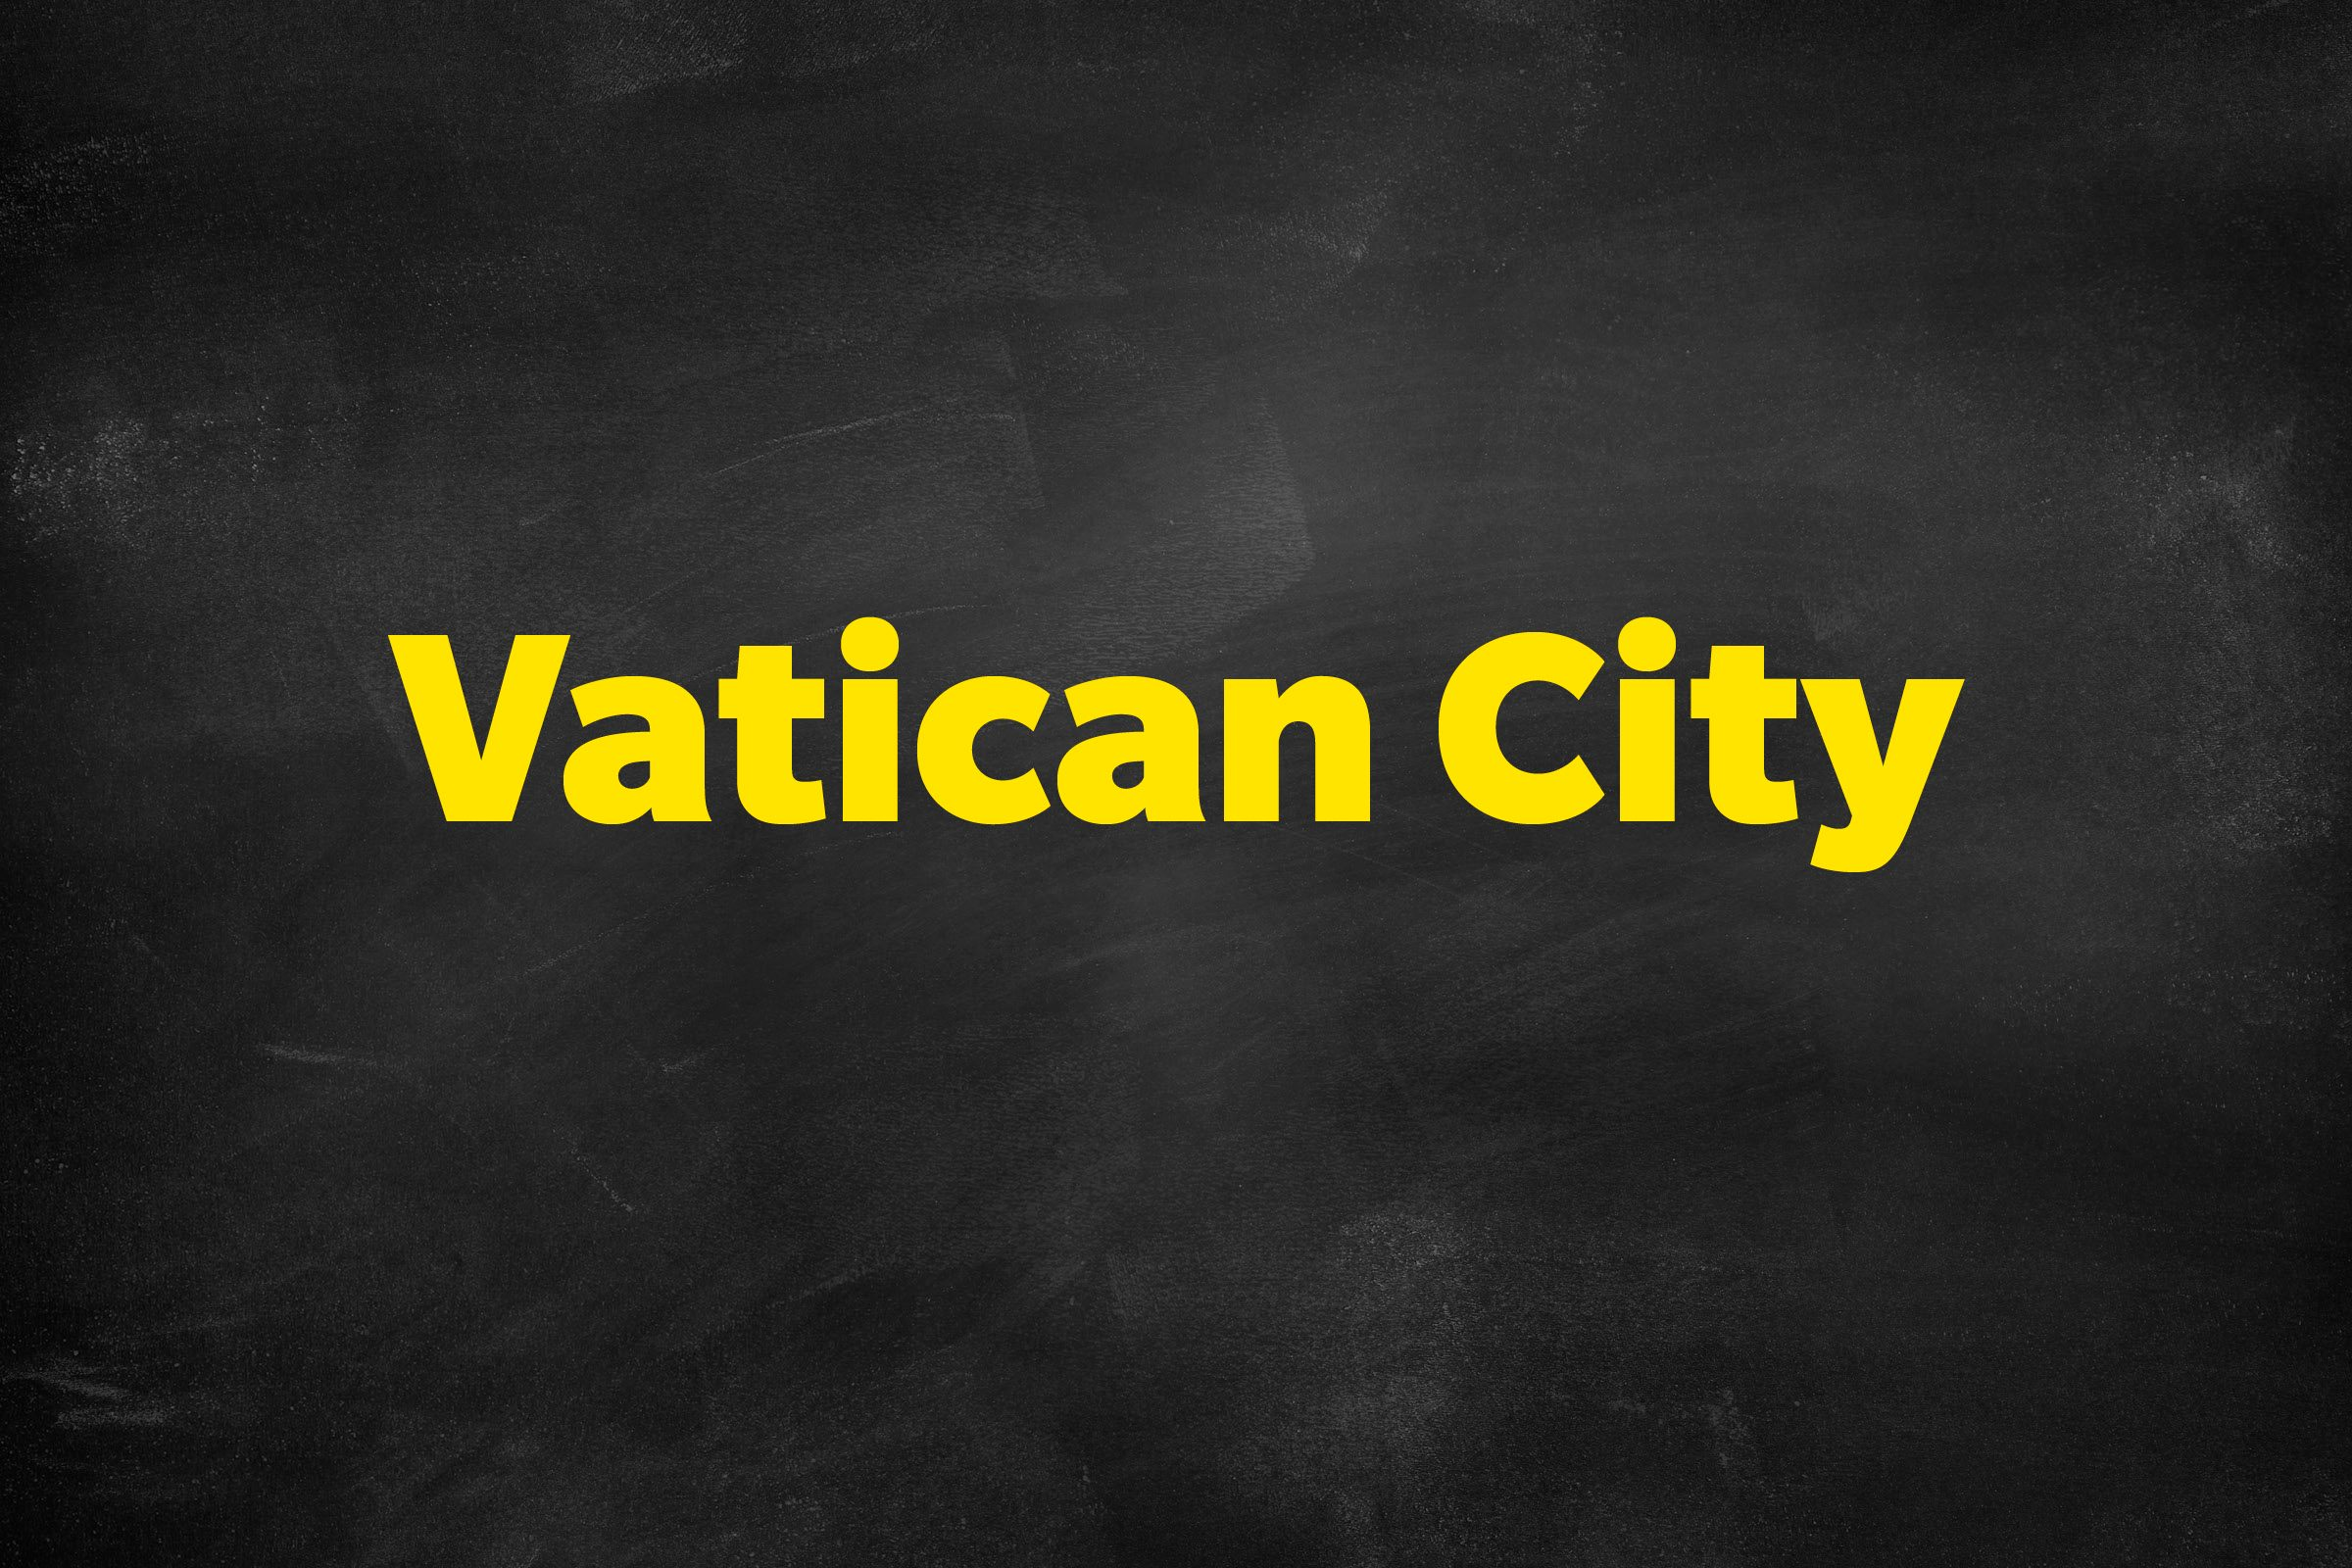 The world's smallest country is Vatican City. At just 0.44 square kilometers, the entire country fits inside the Italian capital city of Rome.